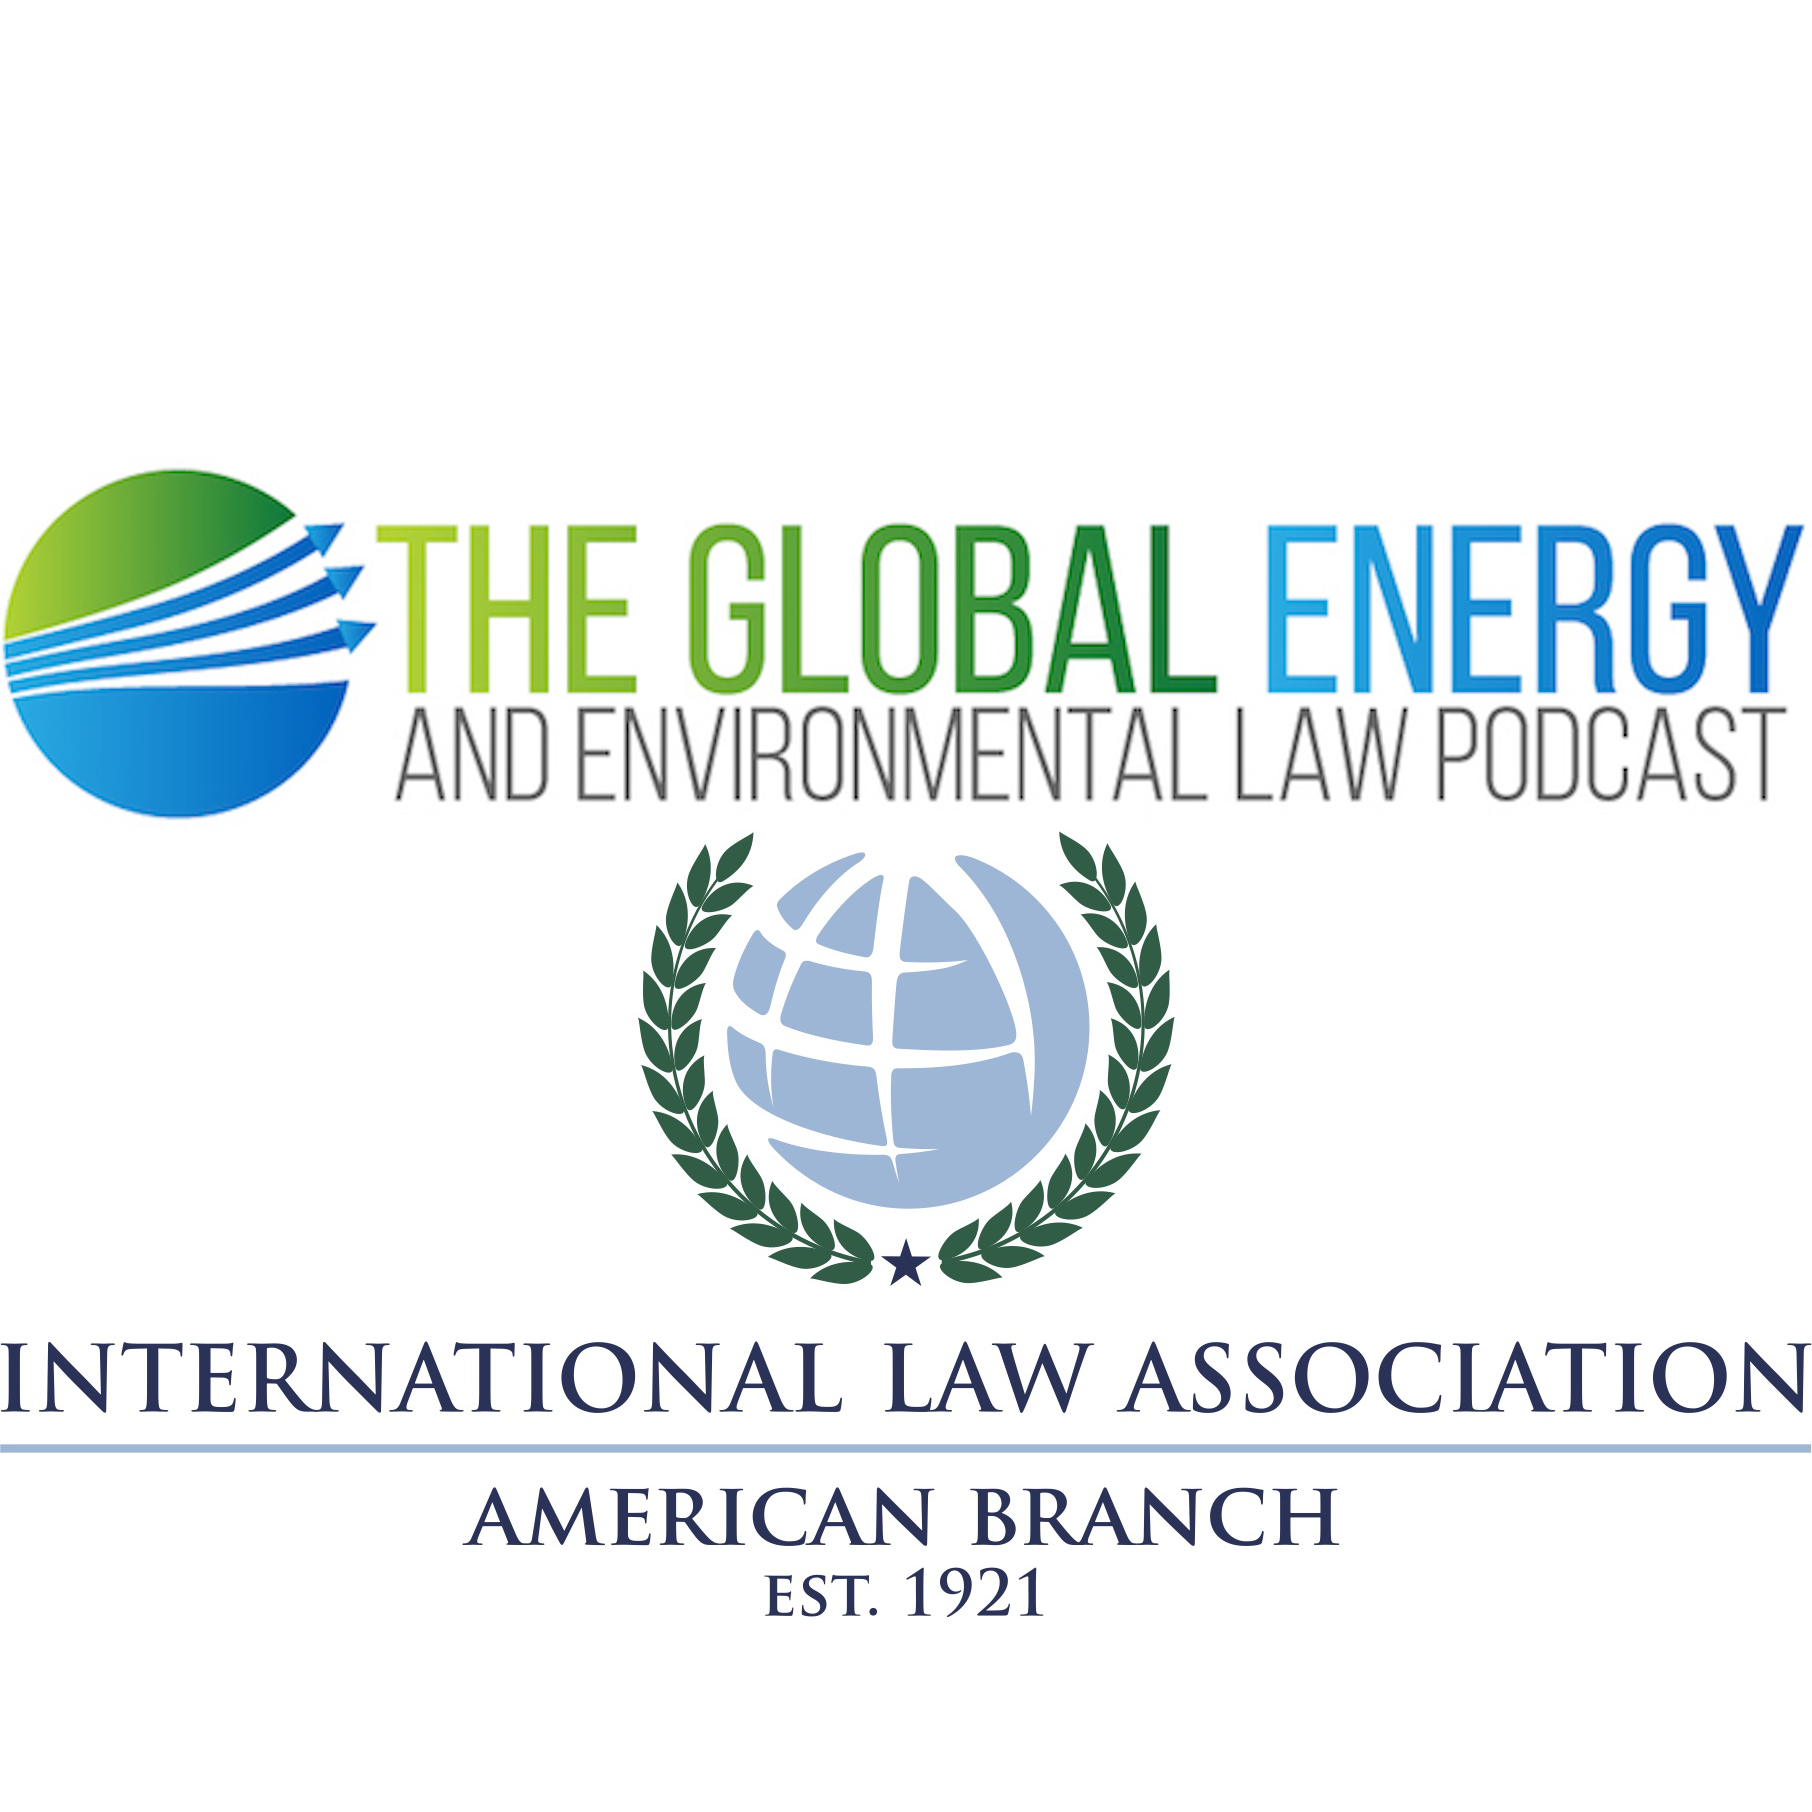 The Global Energy & Environmental Law Podcast